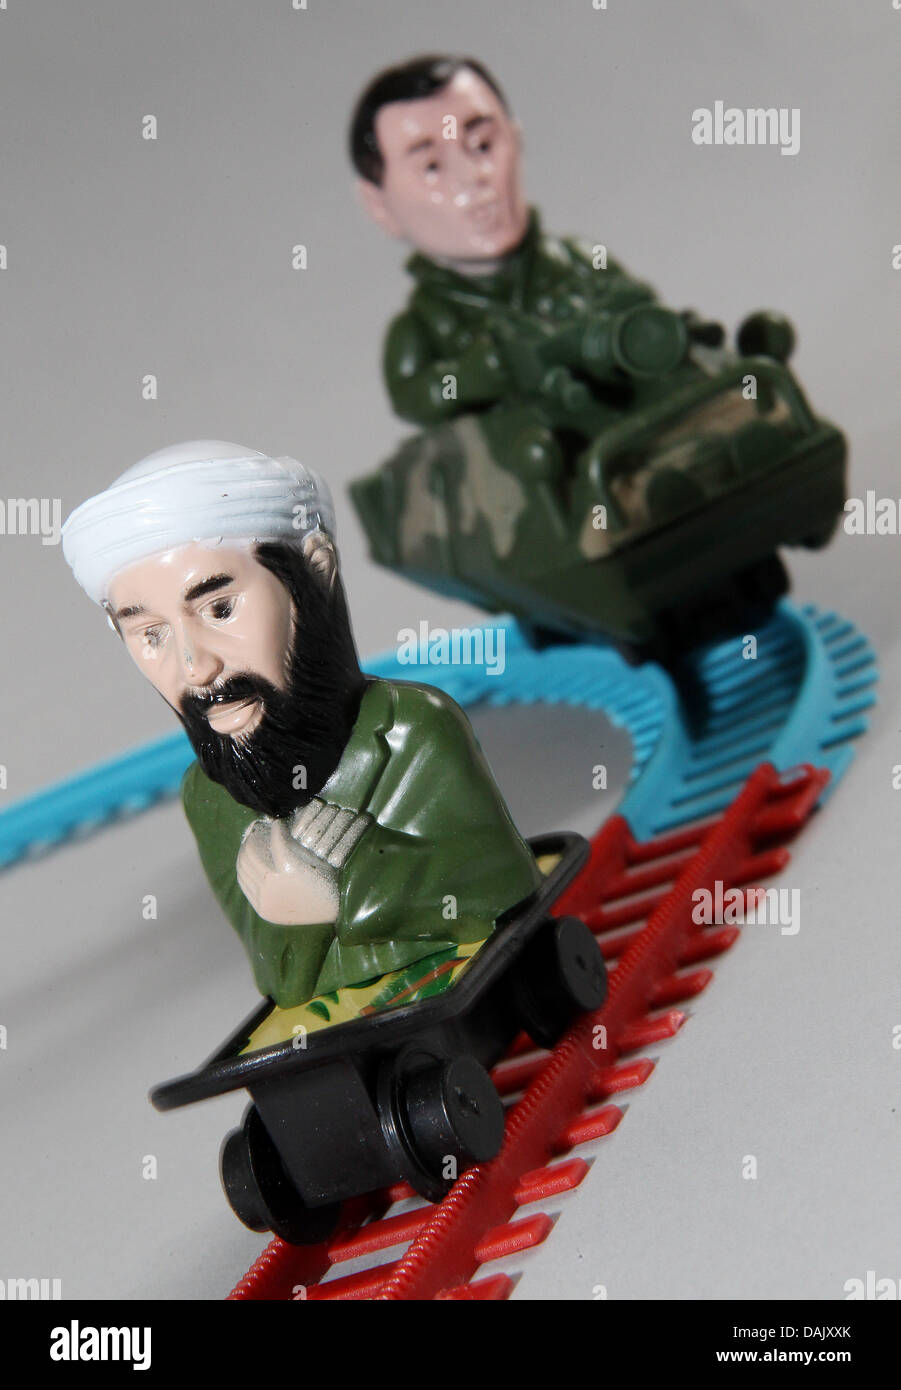 (ILLUSTRATION) An illustration dated 02 May 2011 shows the terrorist Osama bin Lade and the former US President Stock Photo